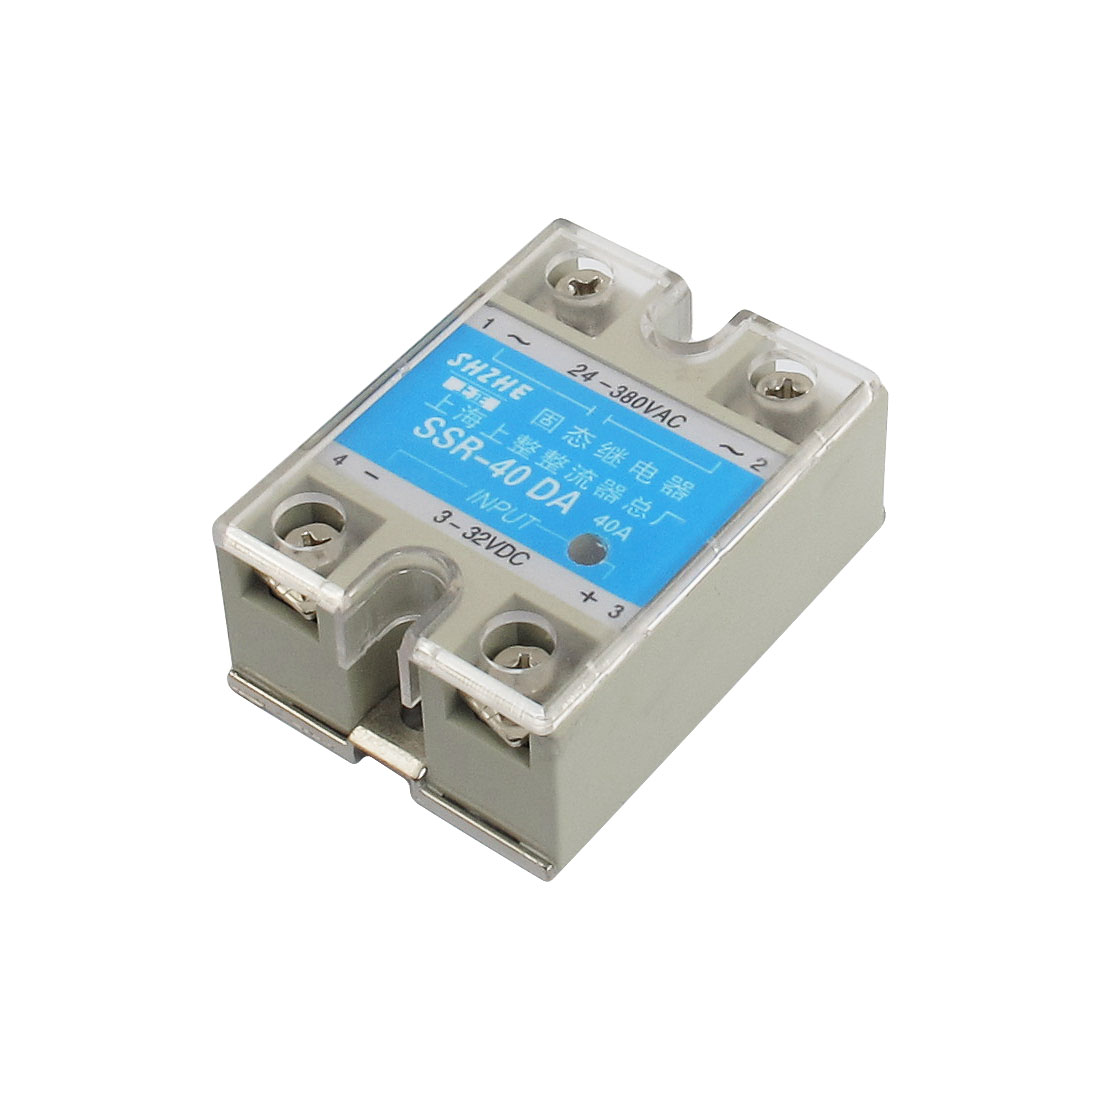 SSR-40DA DC to AC Covered Solid State Module Relay DC 3-32V AC 24-380V